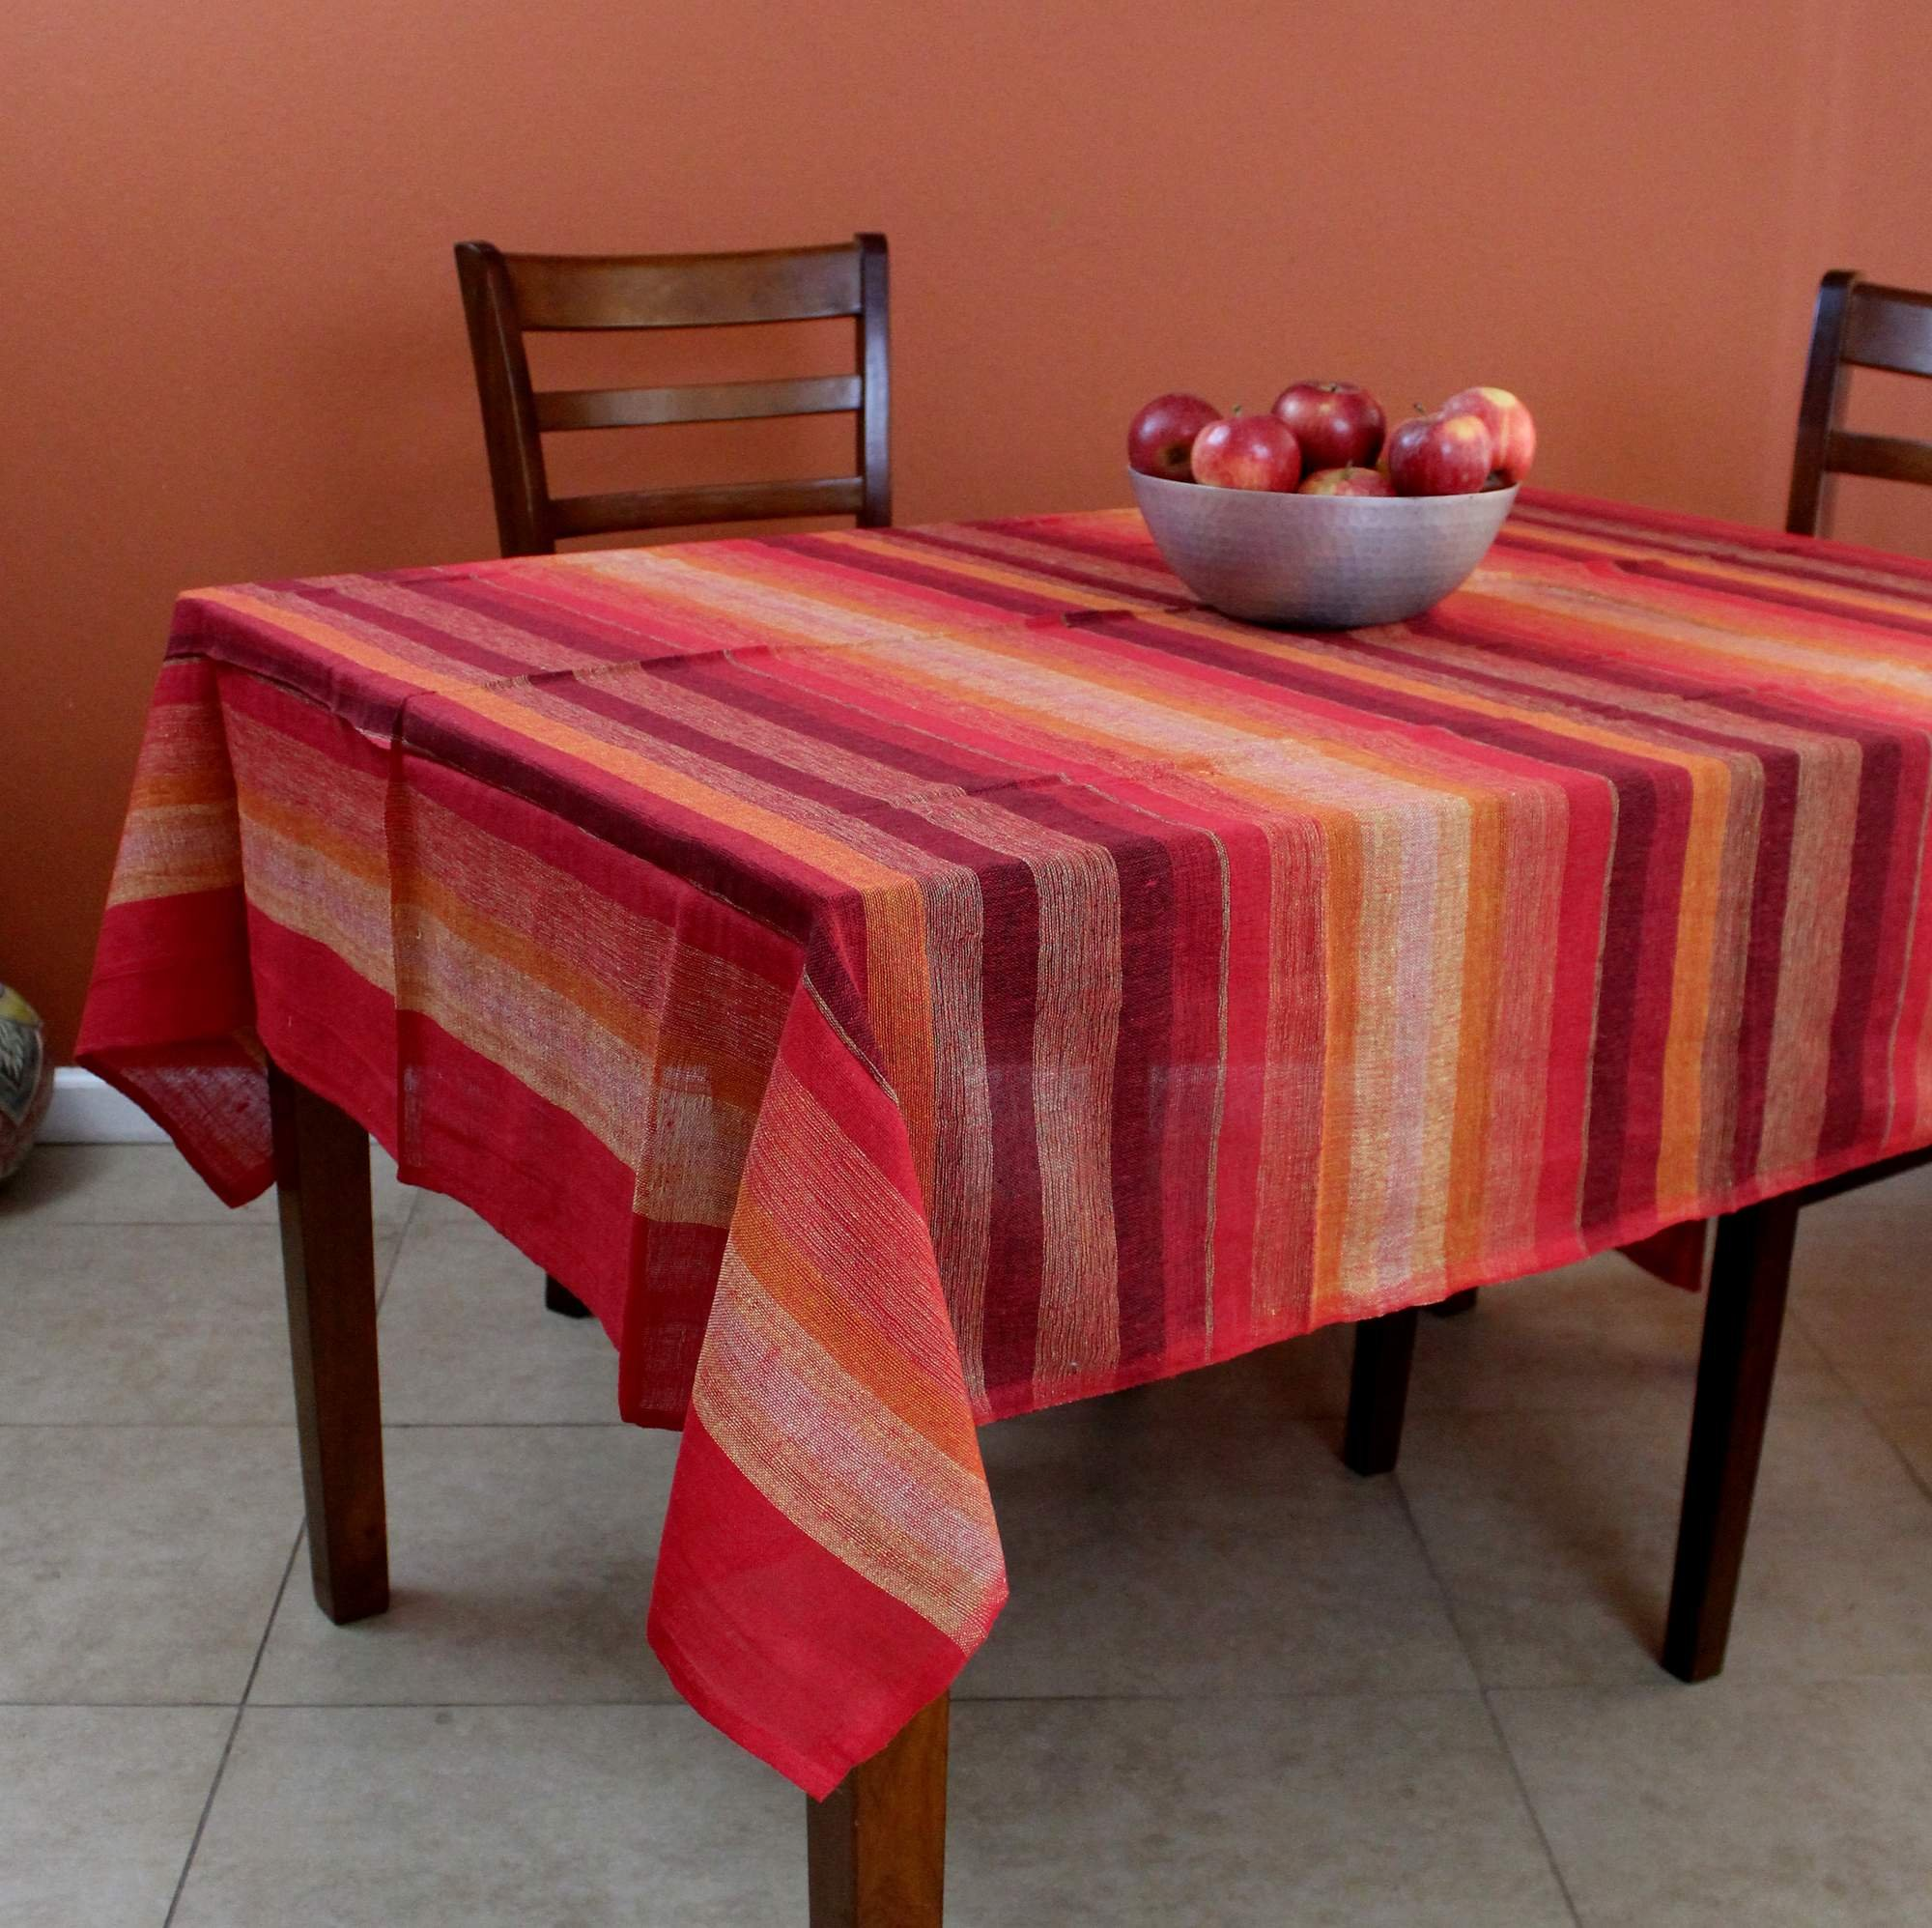 India Arts Cotton Striped Tablecloth Rectangular Tapestry Wall Hanging Throw Lightweight Bedspread (Twin, Red)